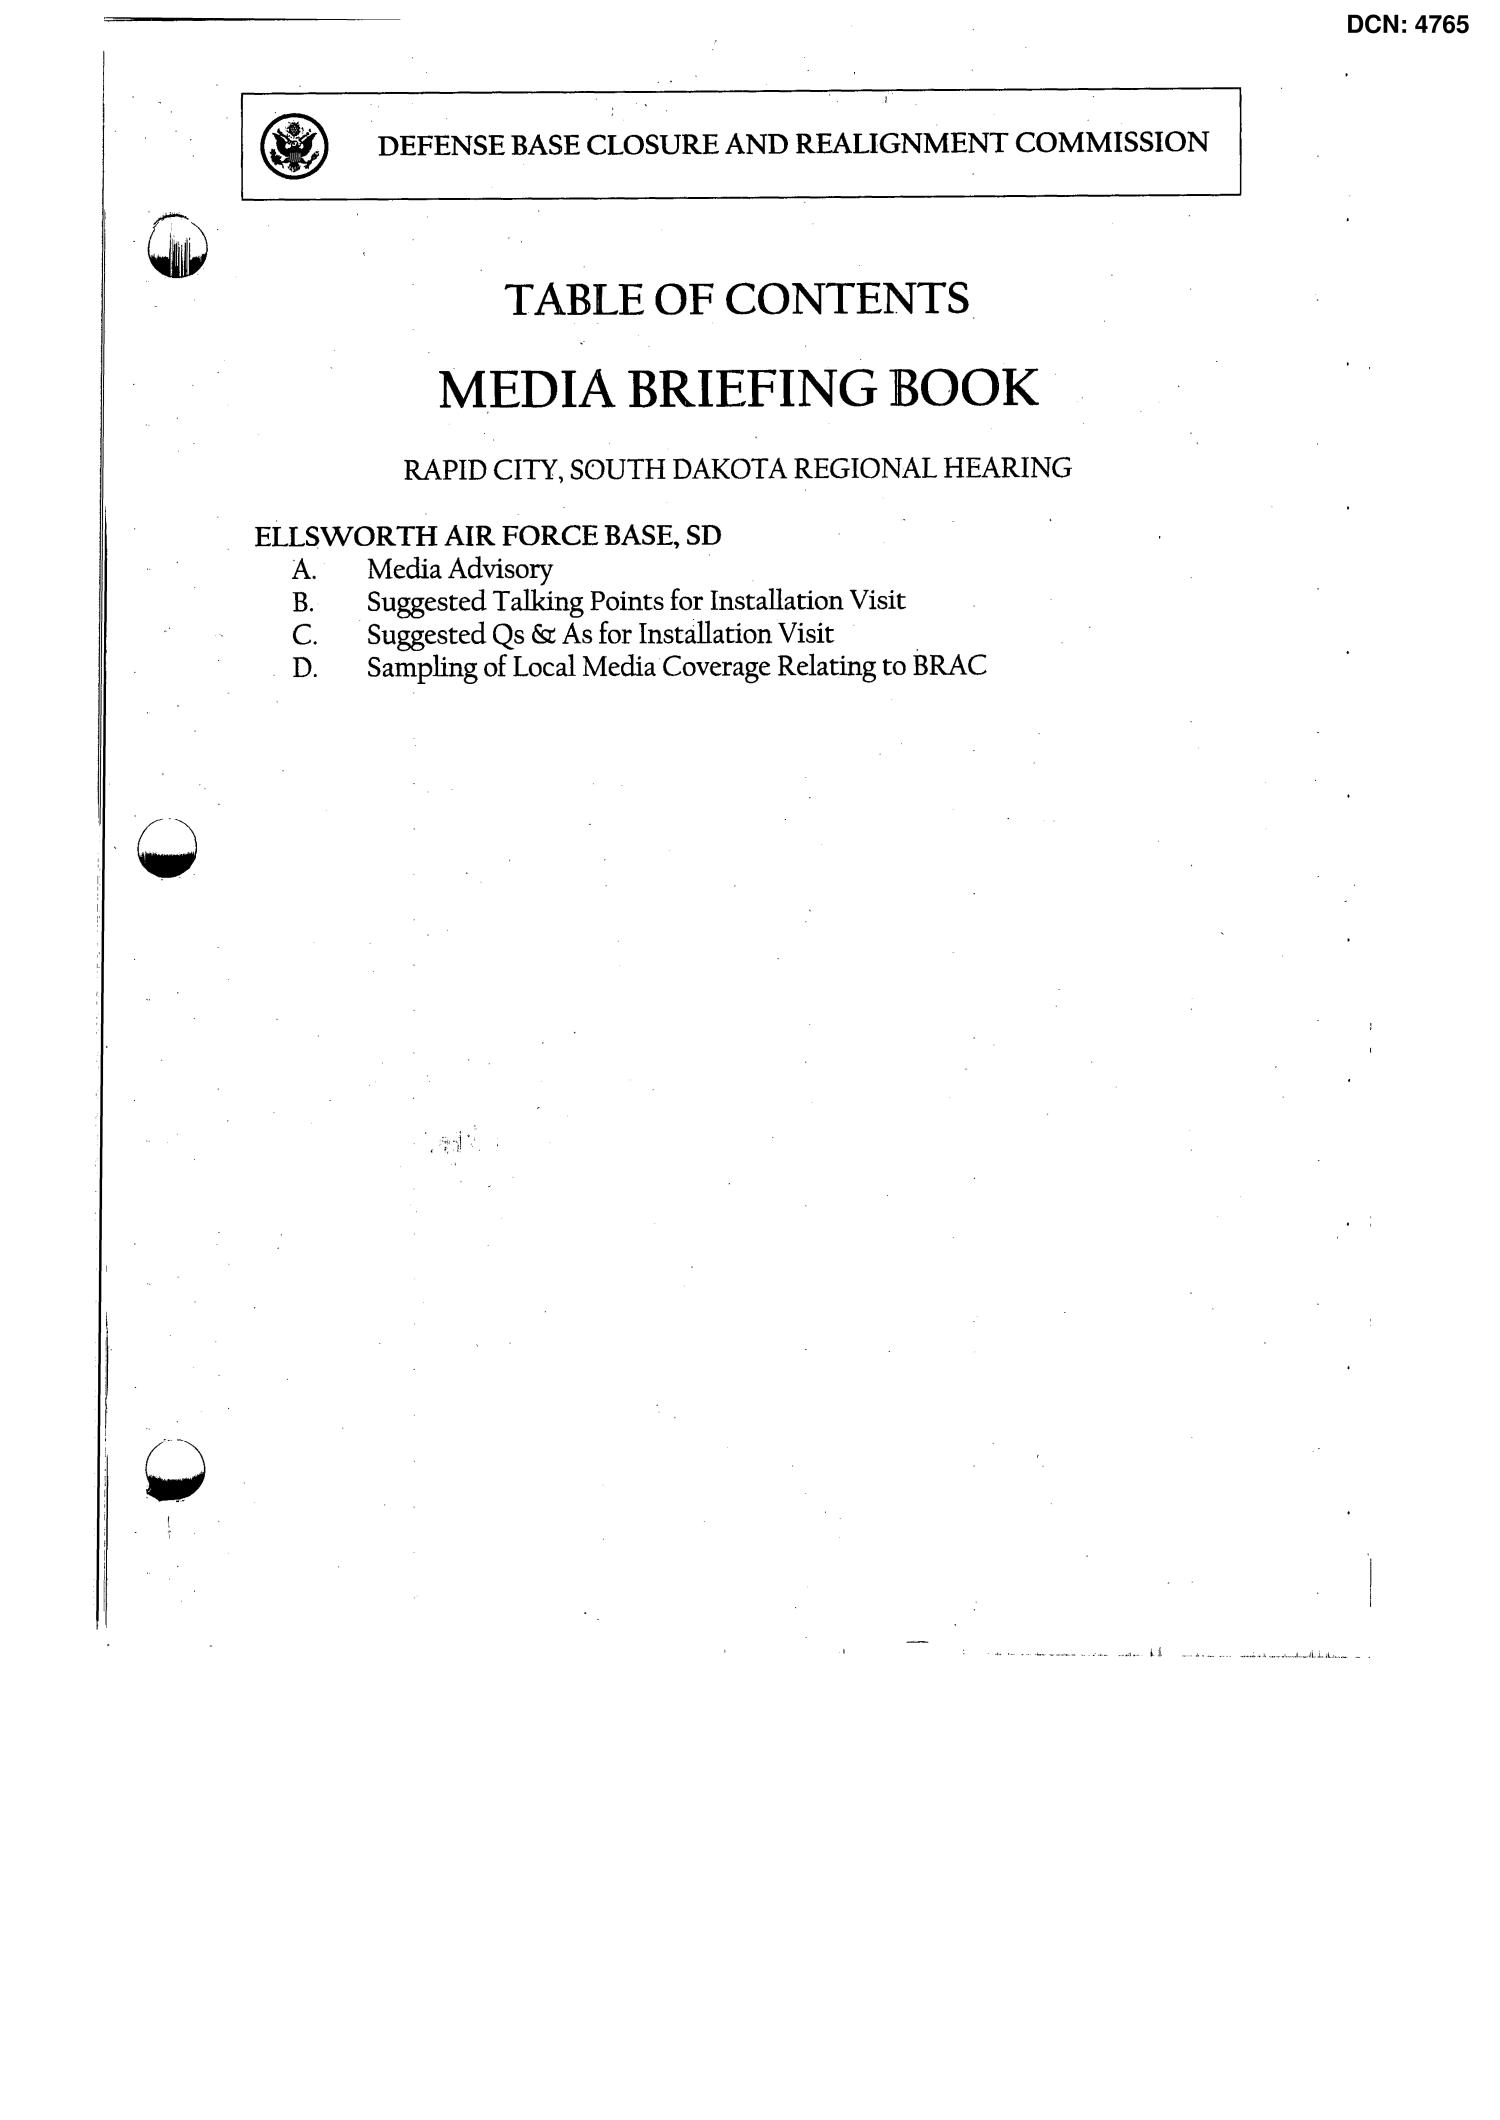 Media Briefing Book Regional Hearing Rapid City, South Dakota                                                                                                      [Sequence #]: 1 of 26